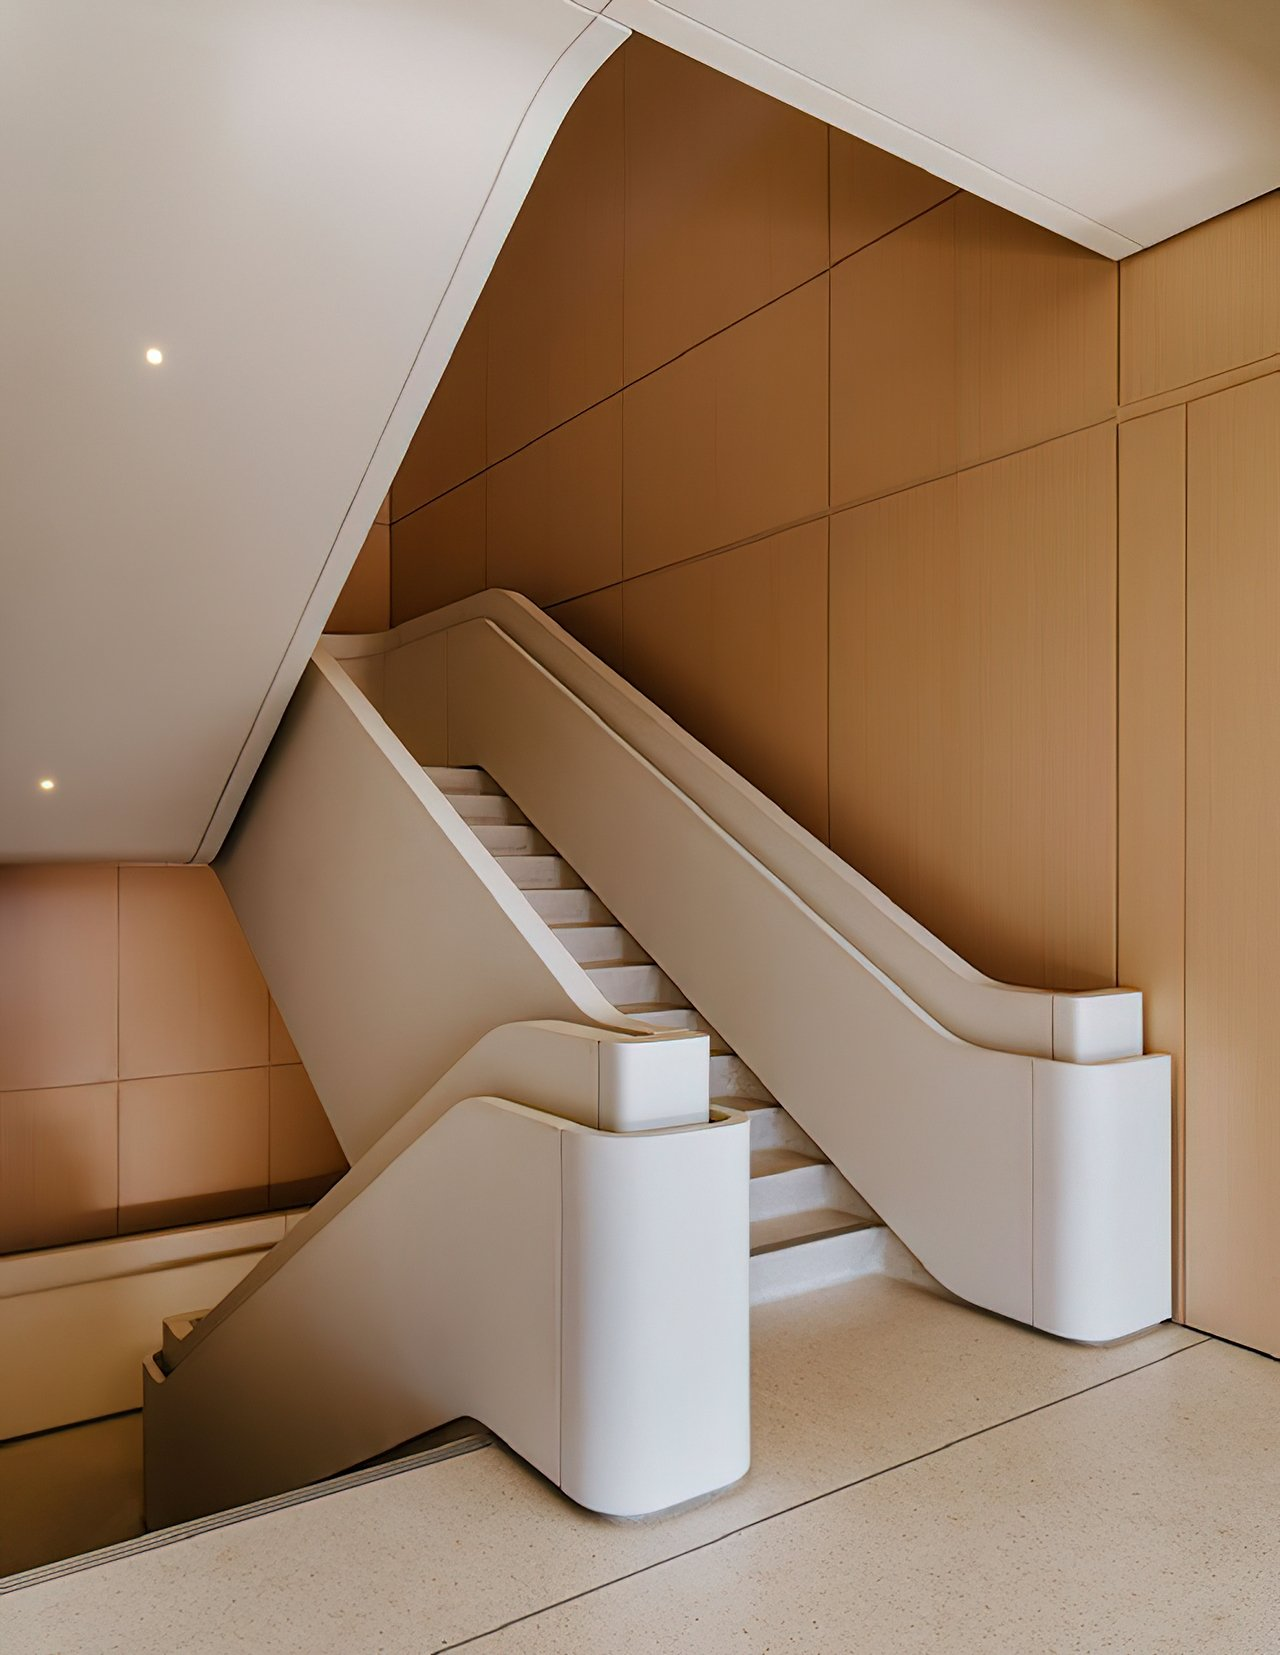 Not even the stairs could escape Jony Ive's influence